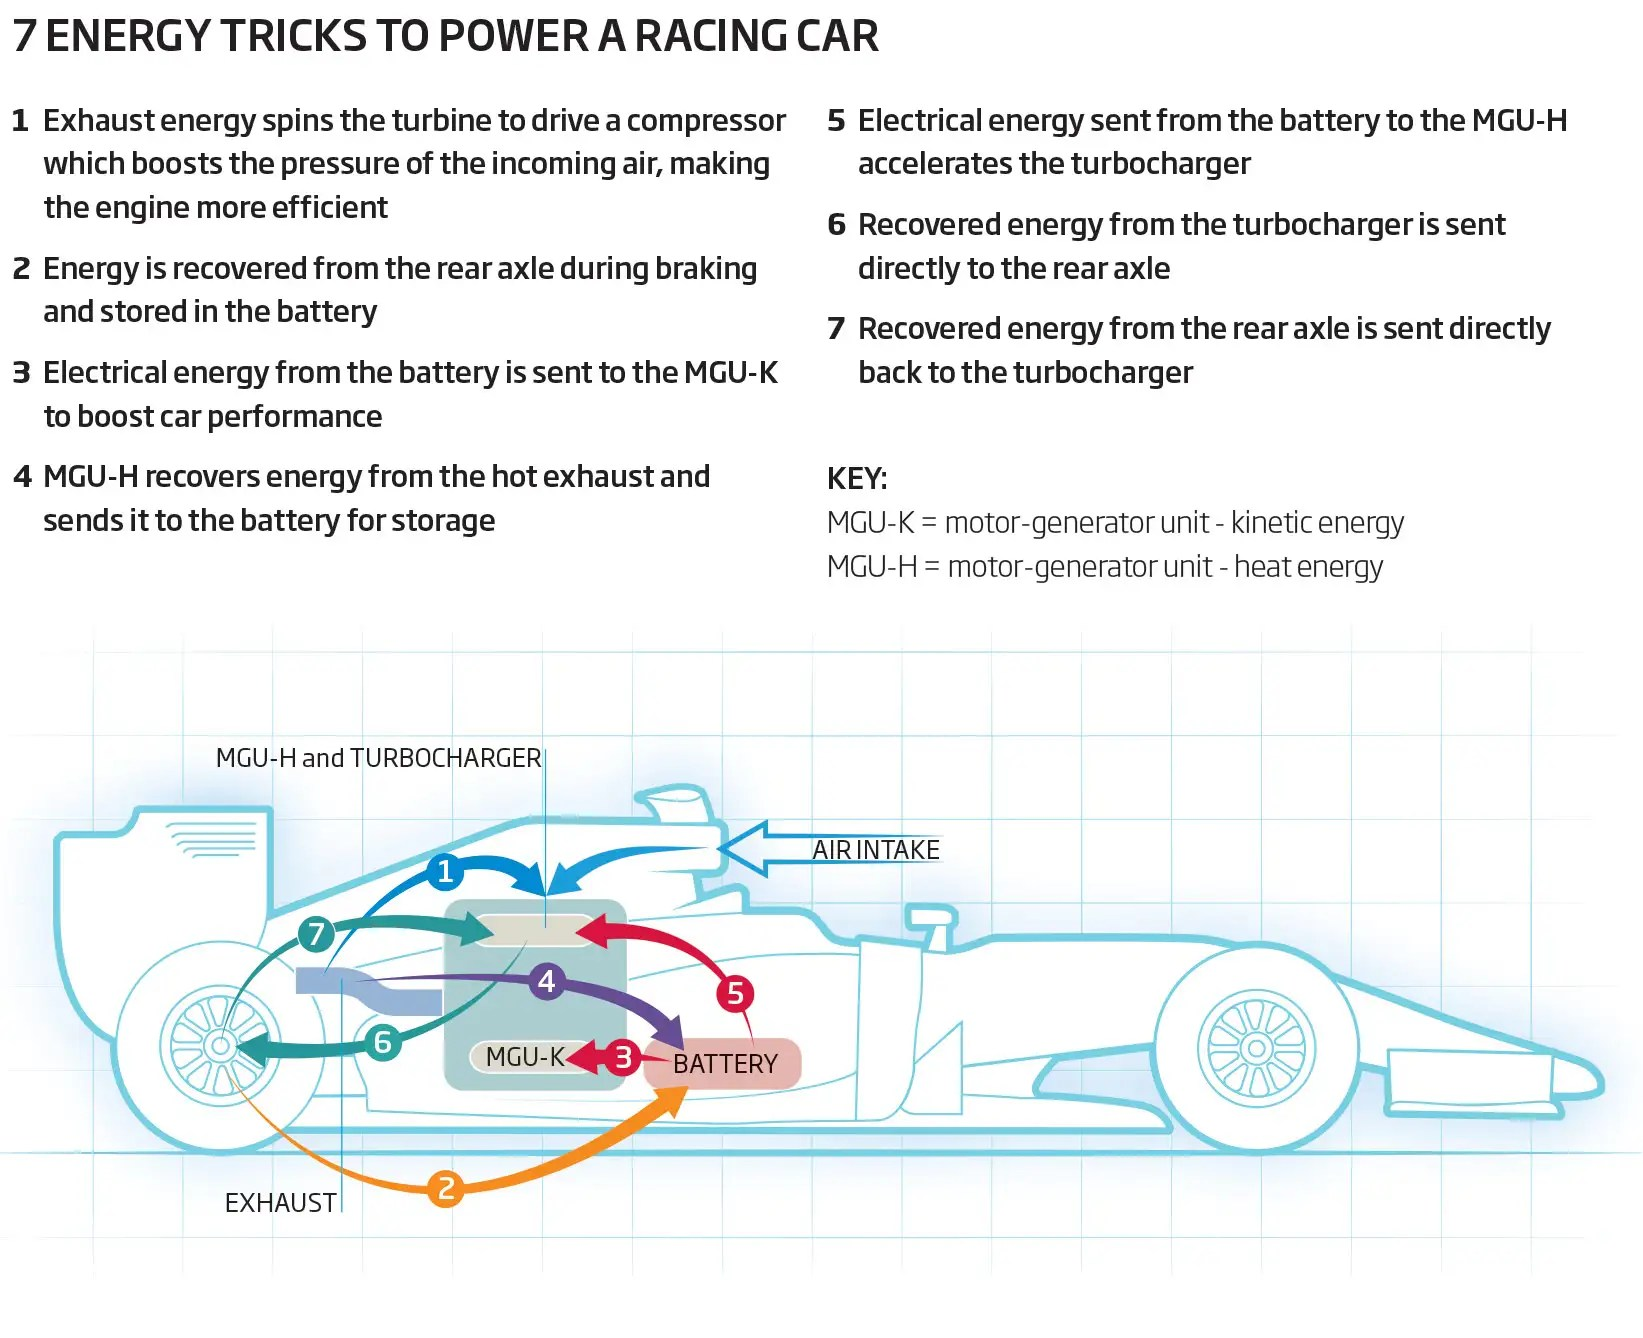 hight resolution of 7 energy tricks to power a racing car